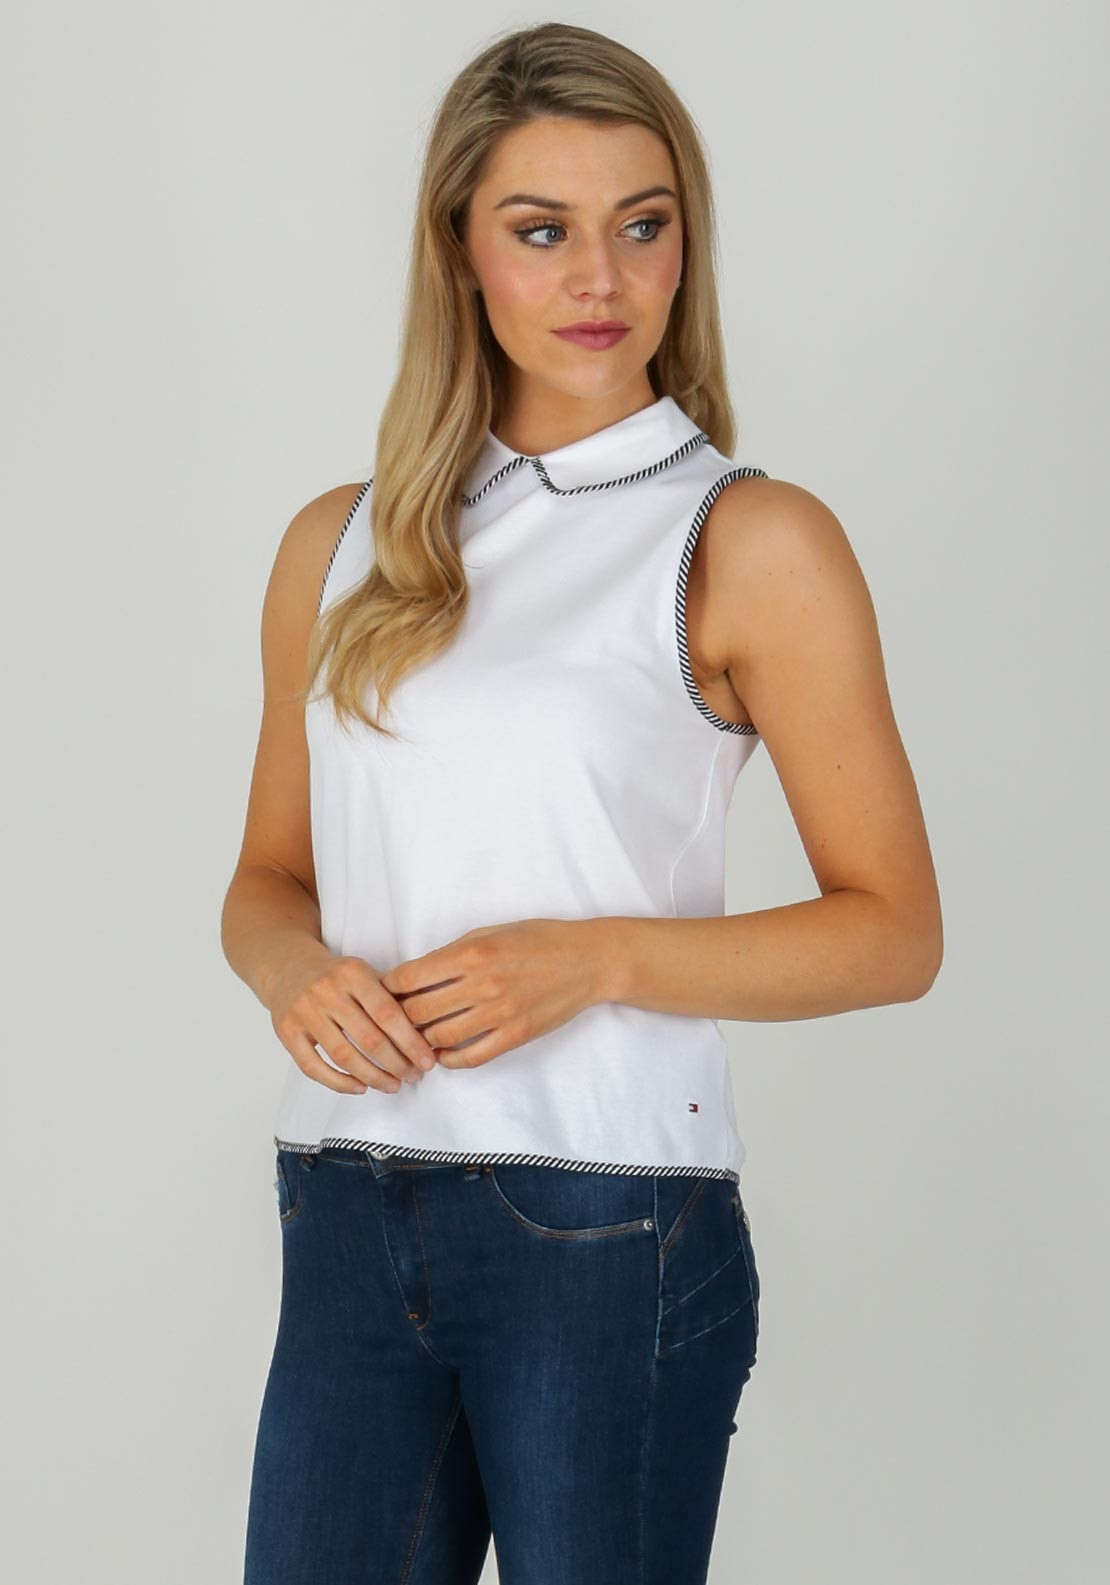 2dc14f63 Tommy Hilfiger Womens Sleeveless Polo Top, White | McElhinneys